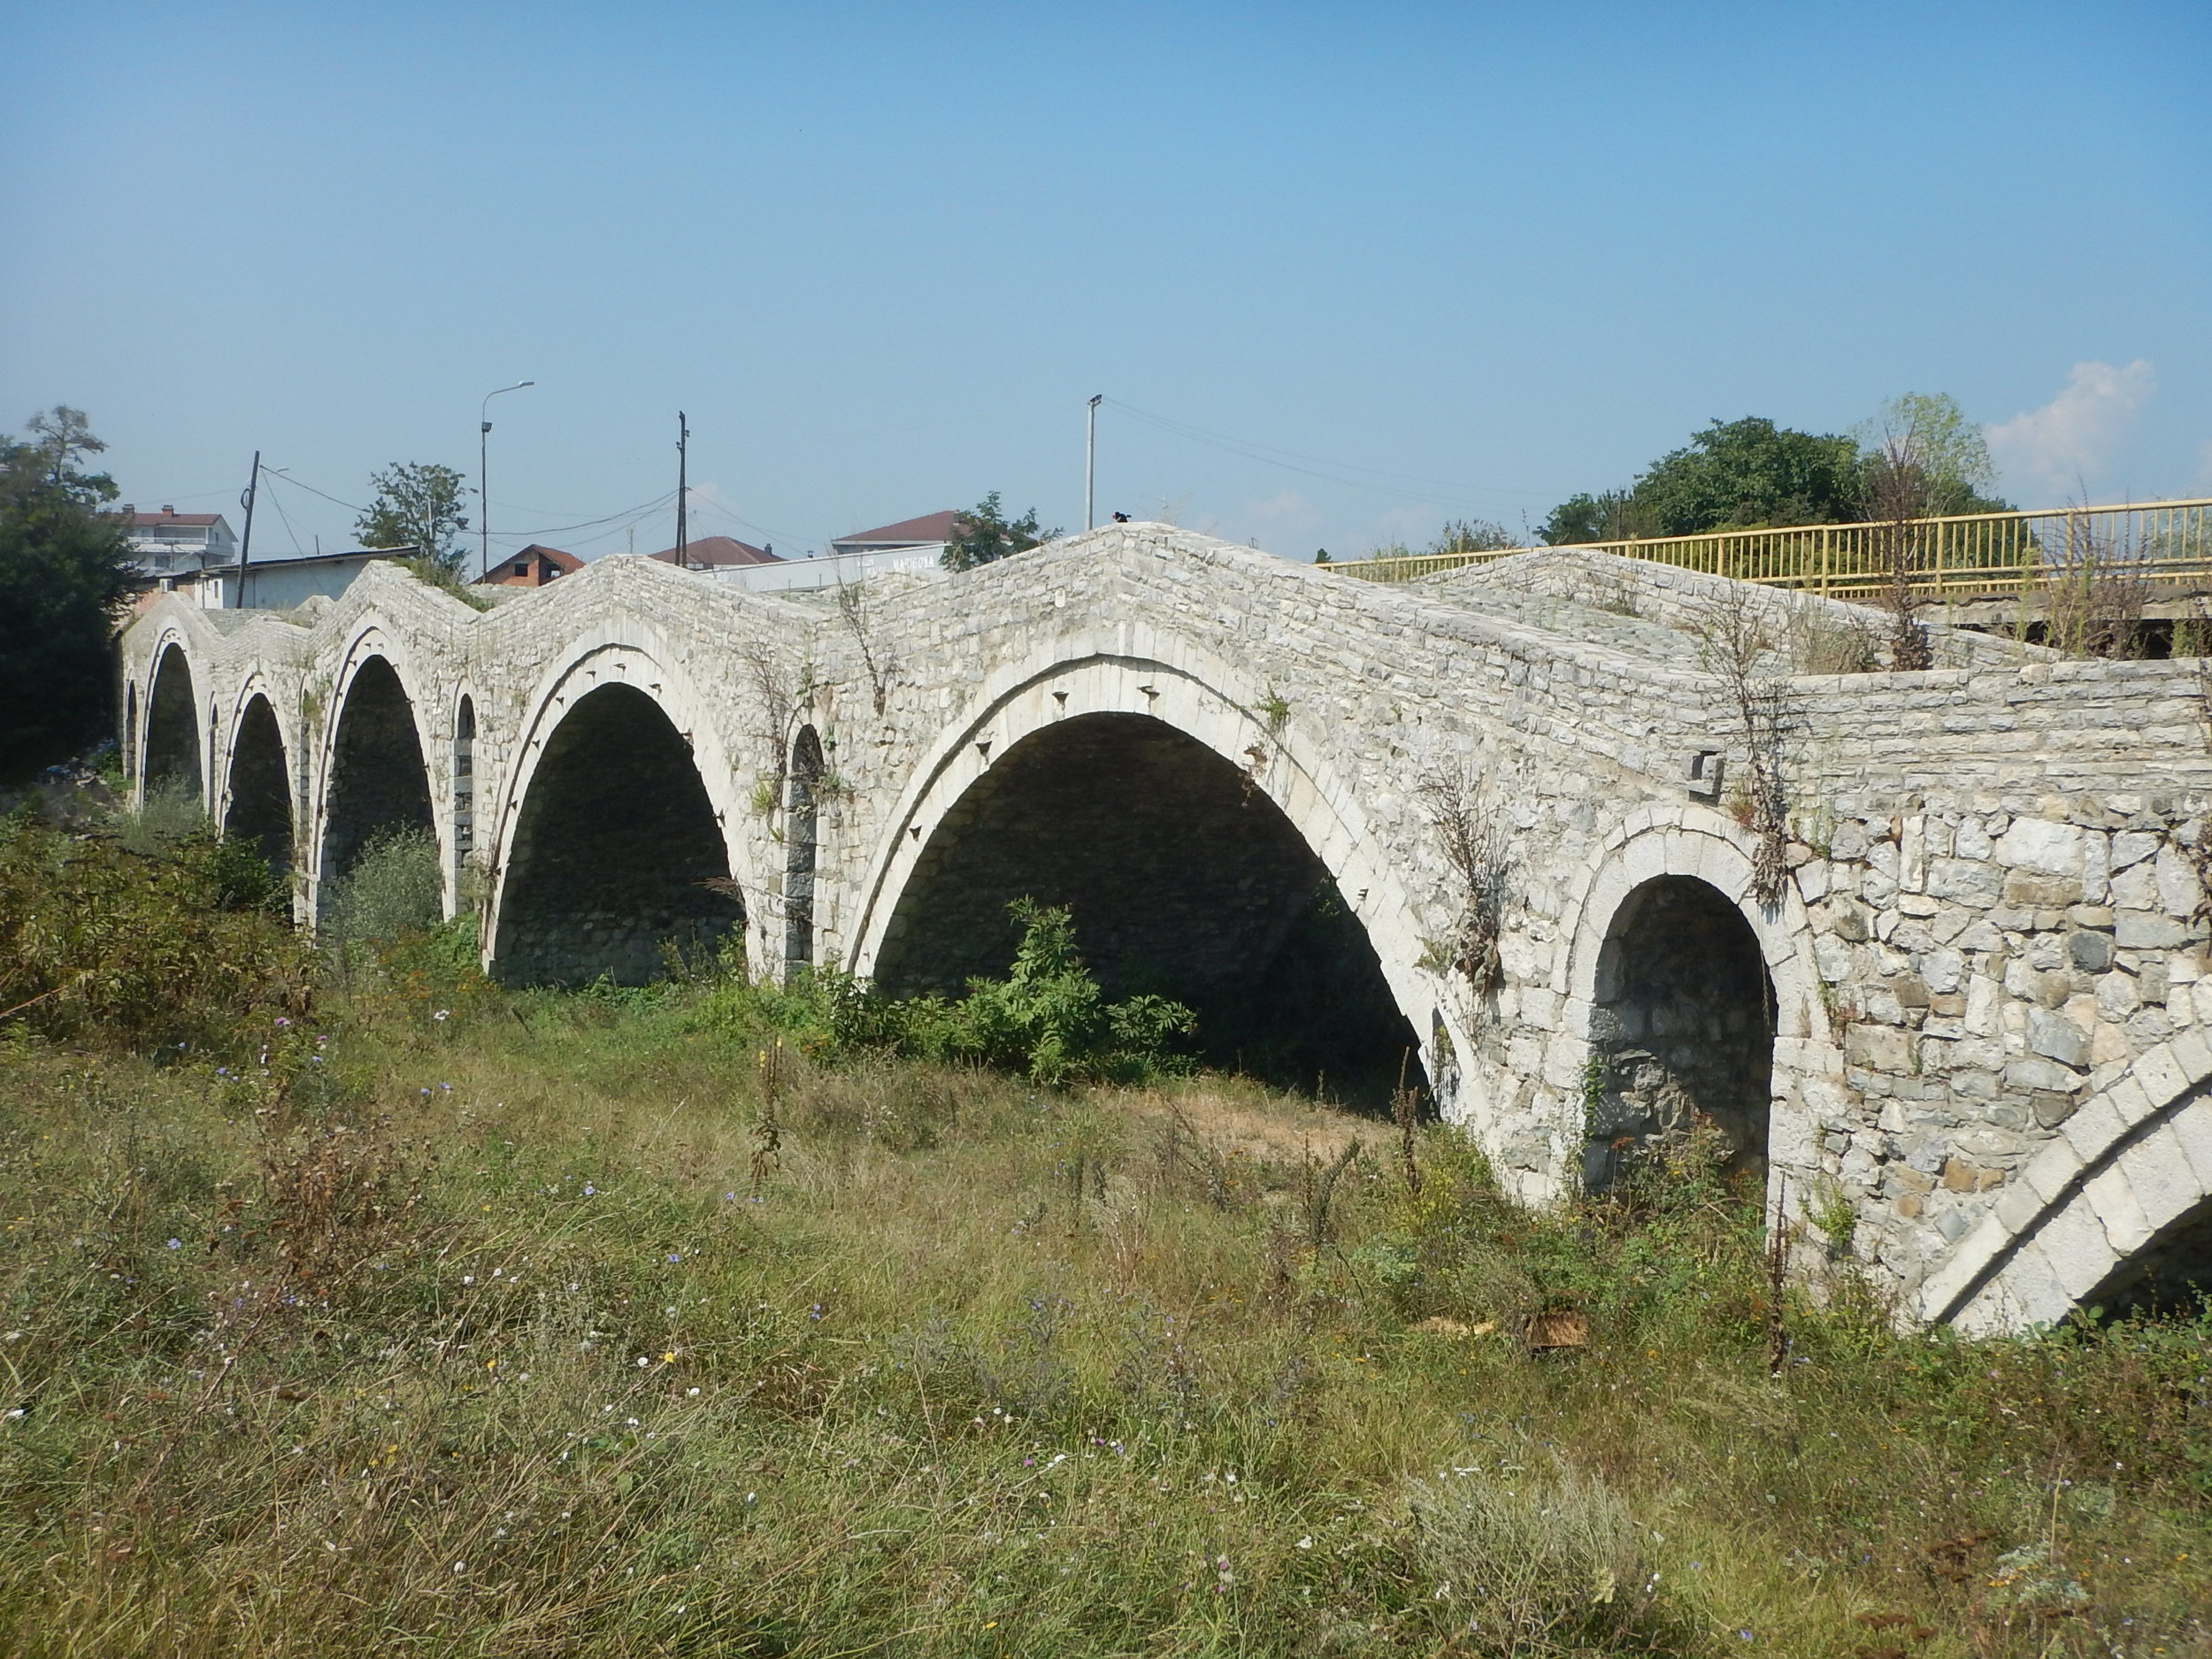 I keep asking but I can't find out much about the history of this bridge.